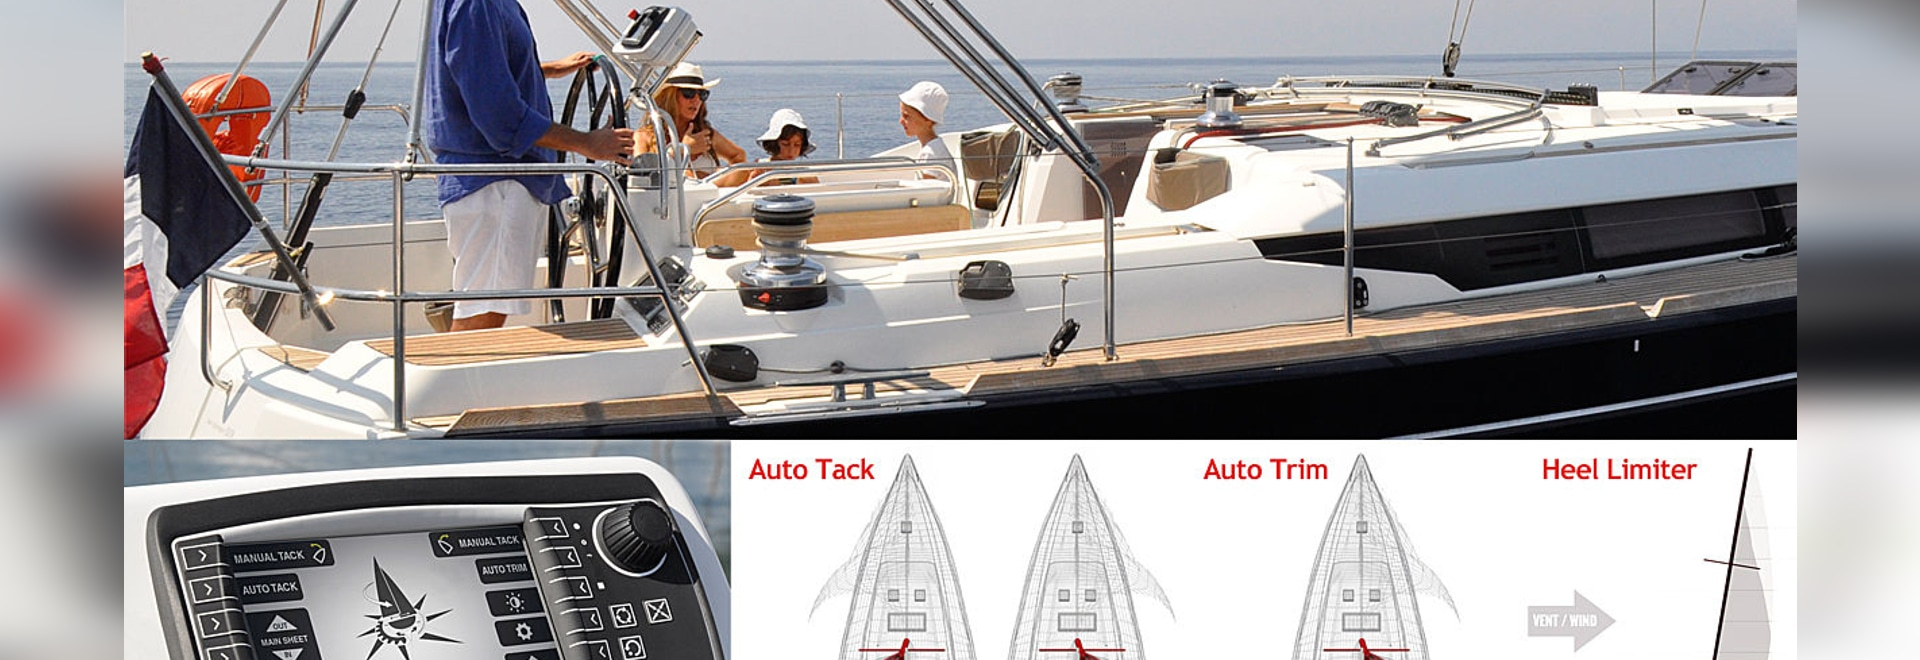 NEW: sail-trimming monitoring and control system by Harken